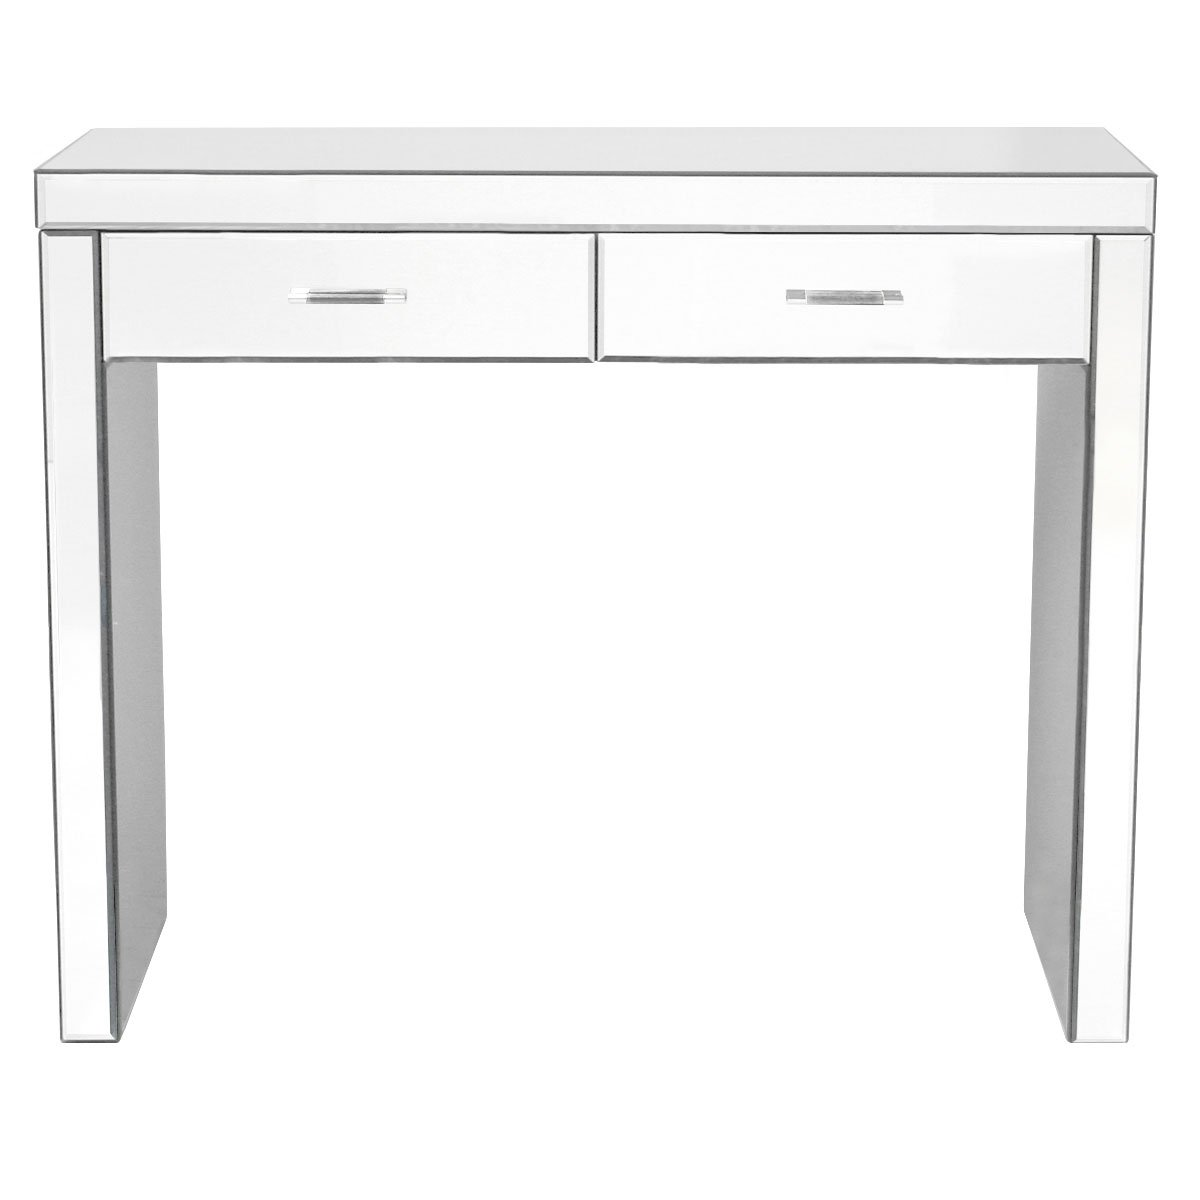 Charles Bentley Home Mirrored Glass Hallway Furniture 2 Drawer Dressing Console Table